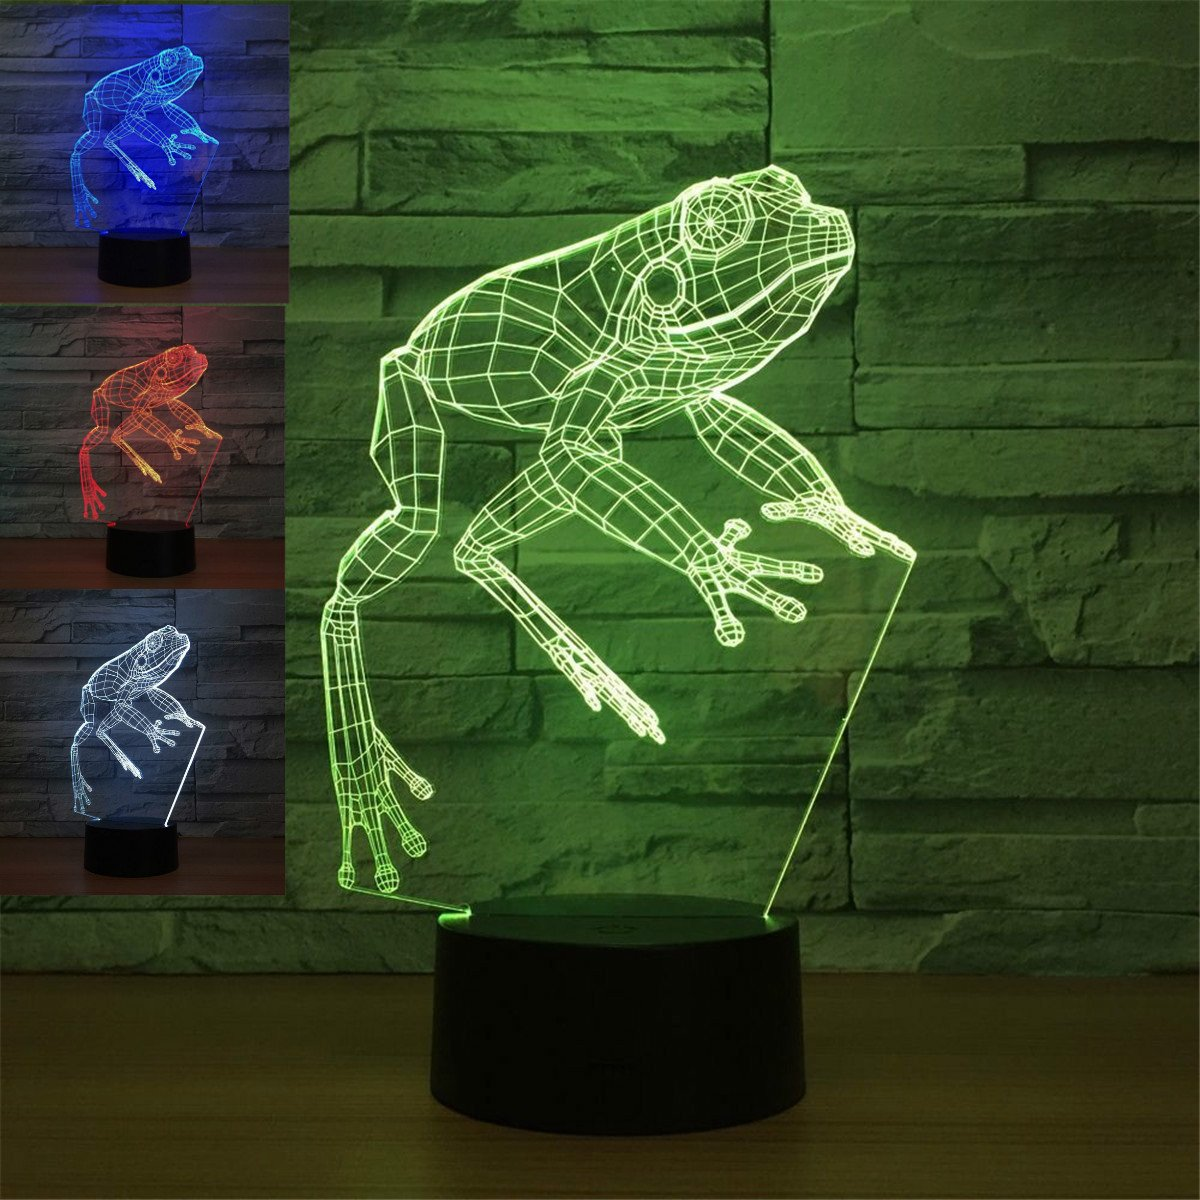 3D Animal Frog Night Light Table Desk Optical Illusion Lamps 7 Color Changing Lights LED Table Lamp Xmas Home Love Brithday Children Kids Decor Toy Gift